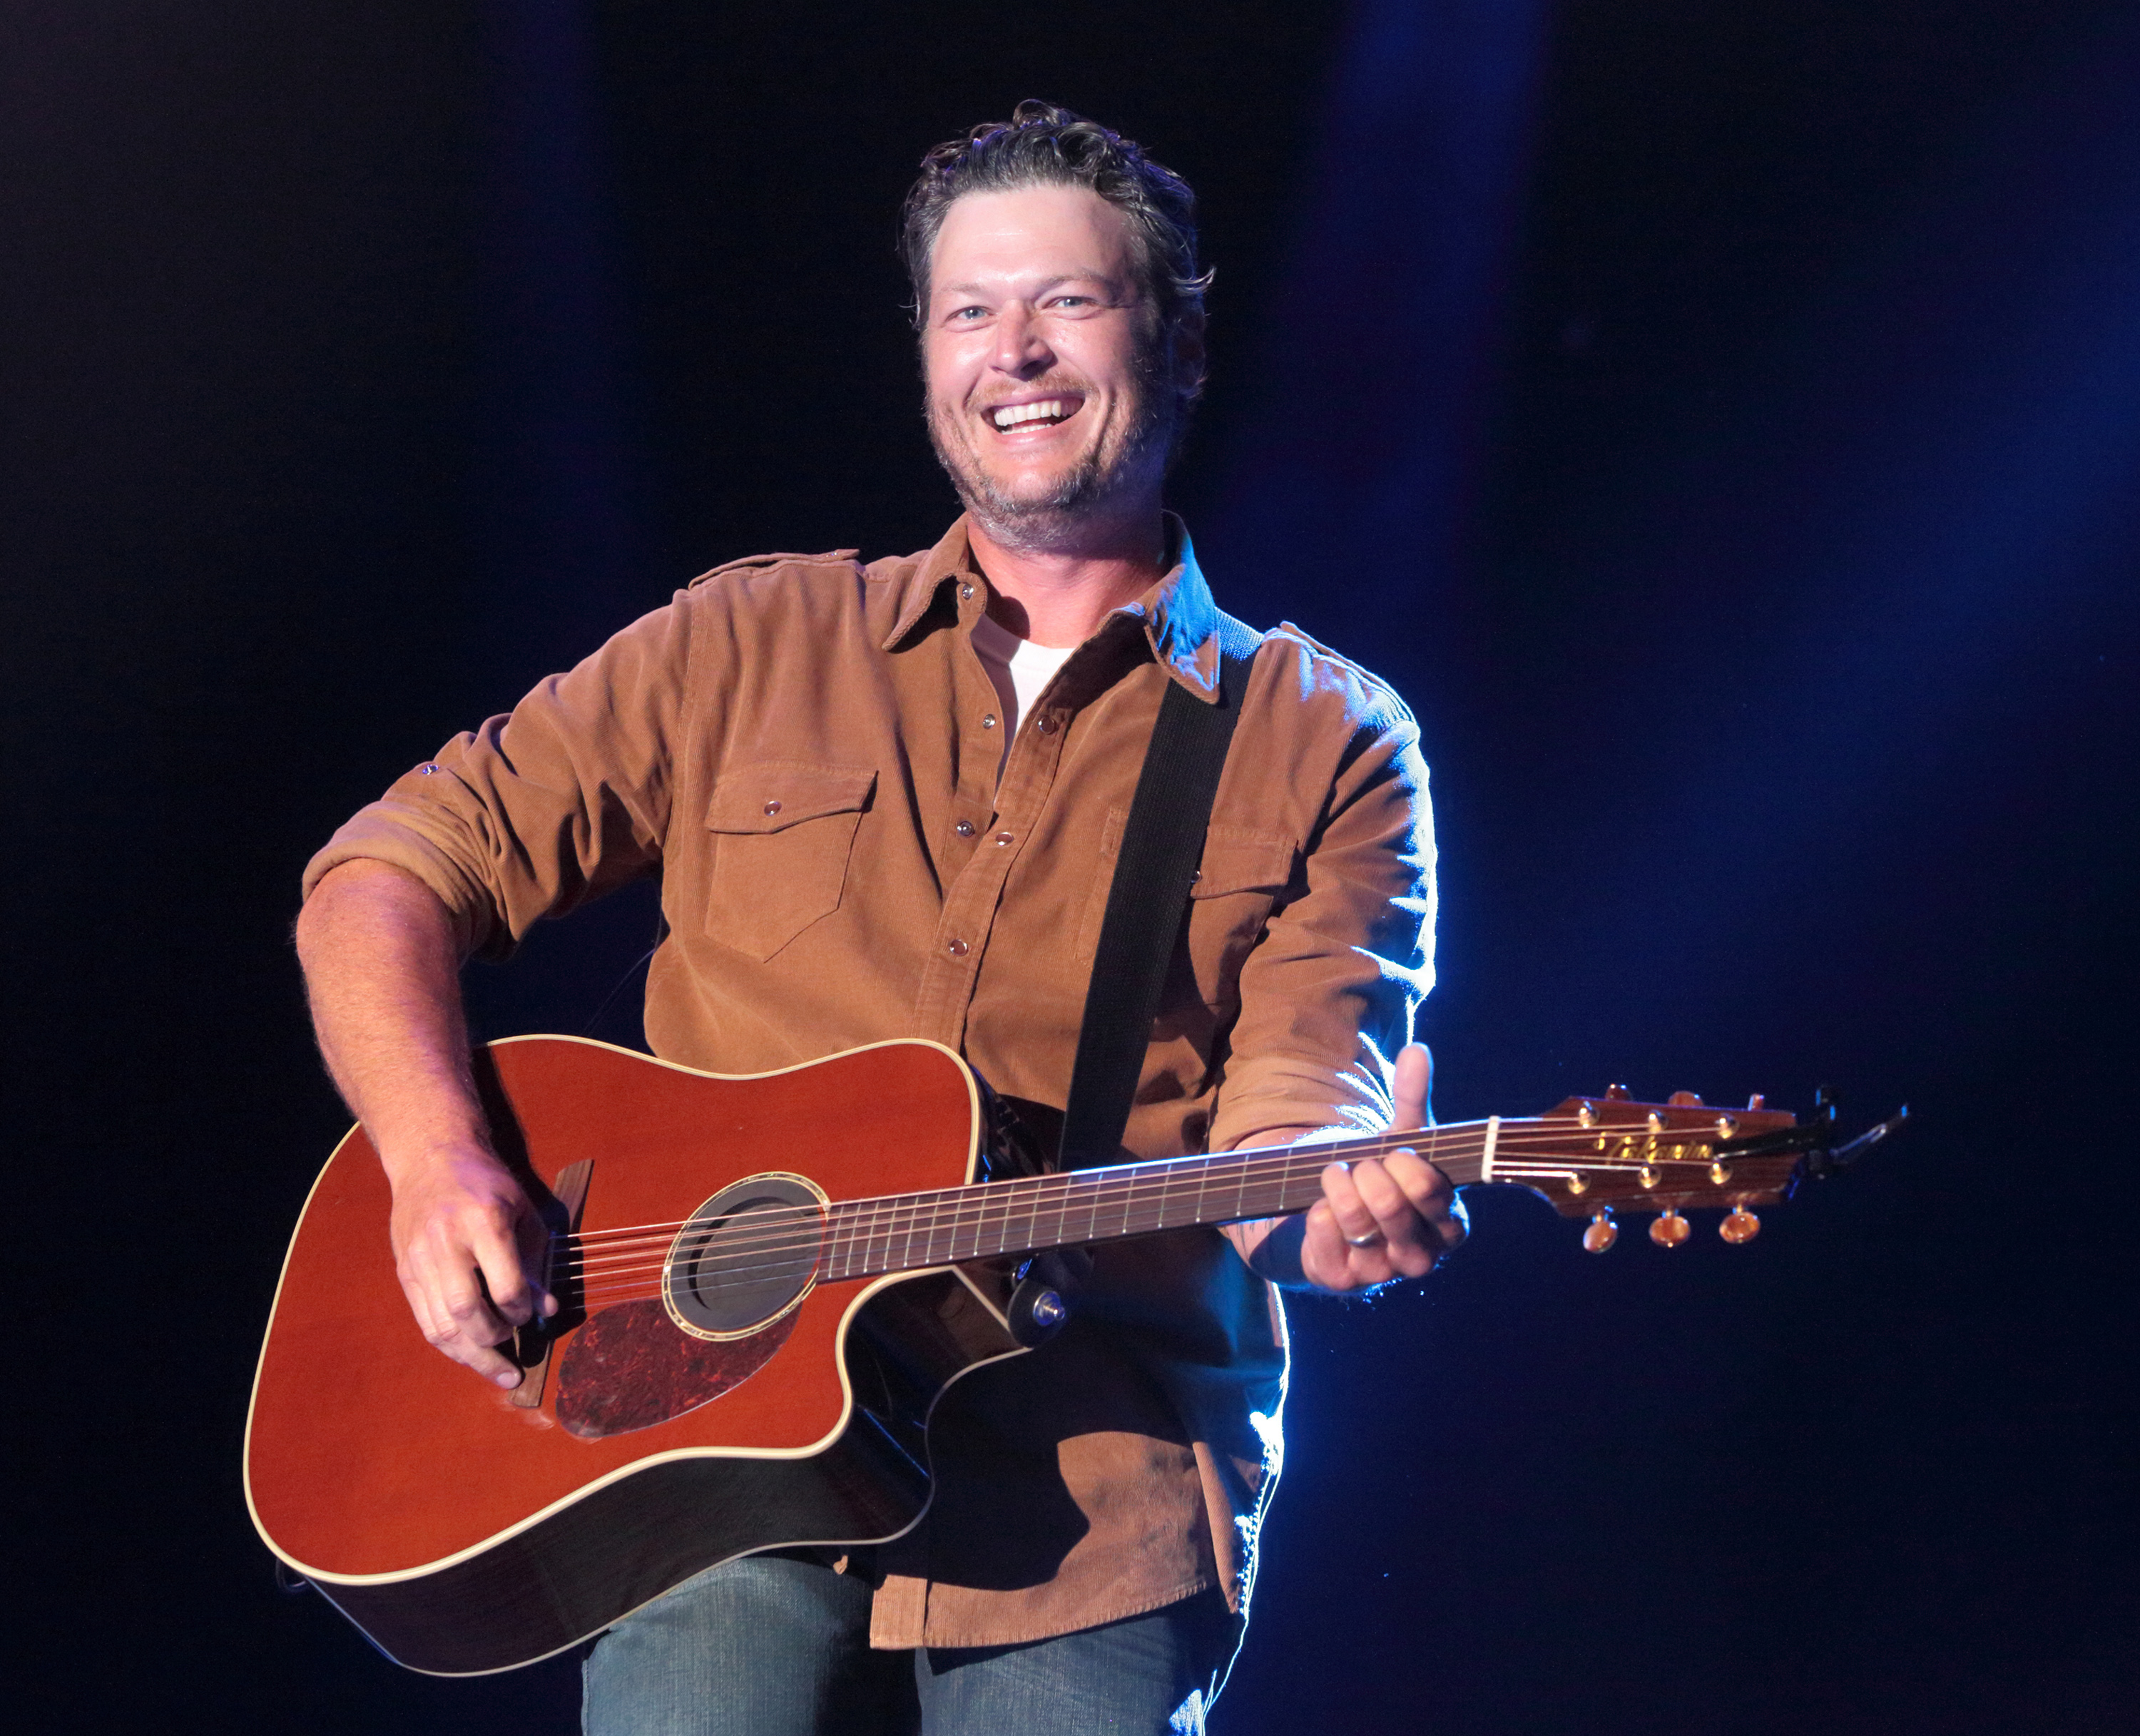 FILE - In this June 26, 2015 file photo, singer-songwriter Blake Shelton performs on Day 1 of the 2015 Big Barrel Country Music Festival at The Woodlands in Dover, Del. Shelton sued In Touch Weekly and its parent company Bauer Publishing Co. on Monday, Oct. 19, 2015, for defamation over a September cover story claiming the country music star was drinking heavily, it contributed to his divorce from Miranda Lambert and he was headed to rehab.  (Photo by Owen Sweeney/Invision/AP, File)